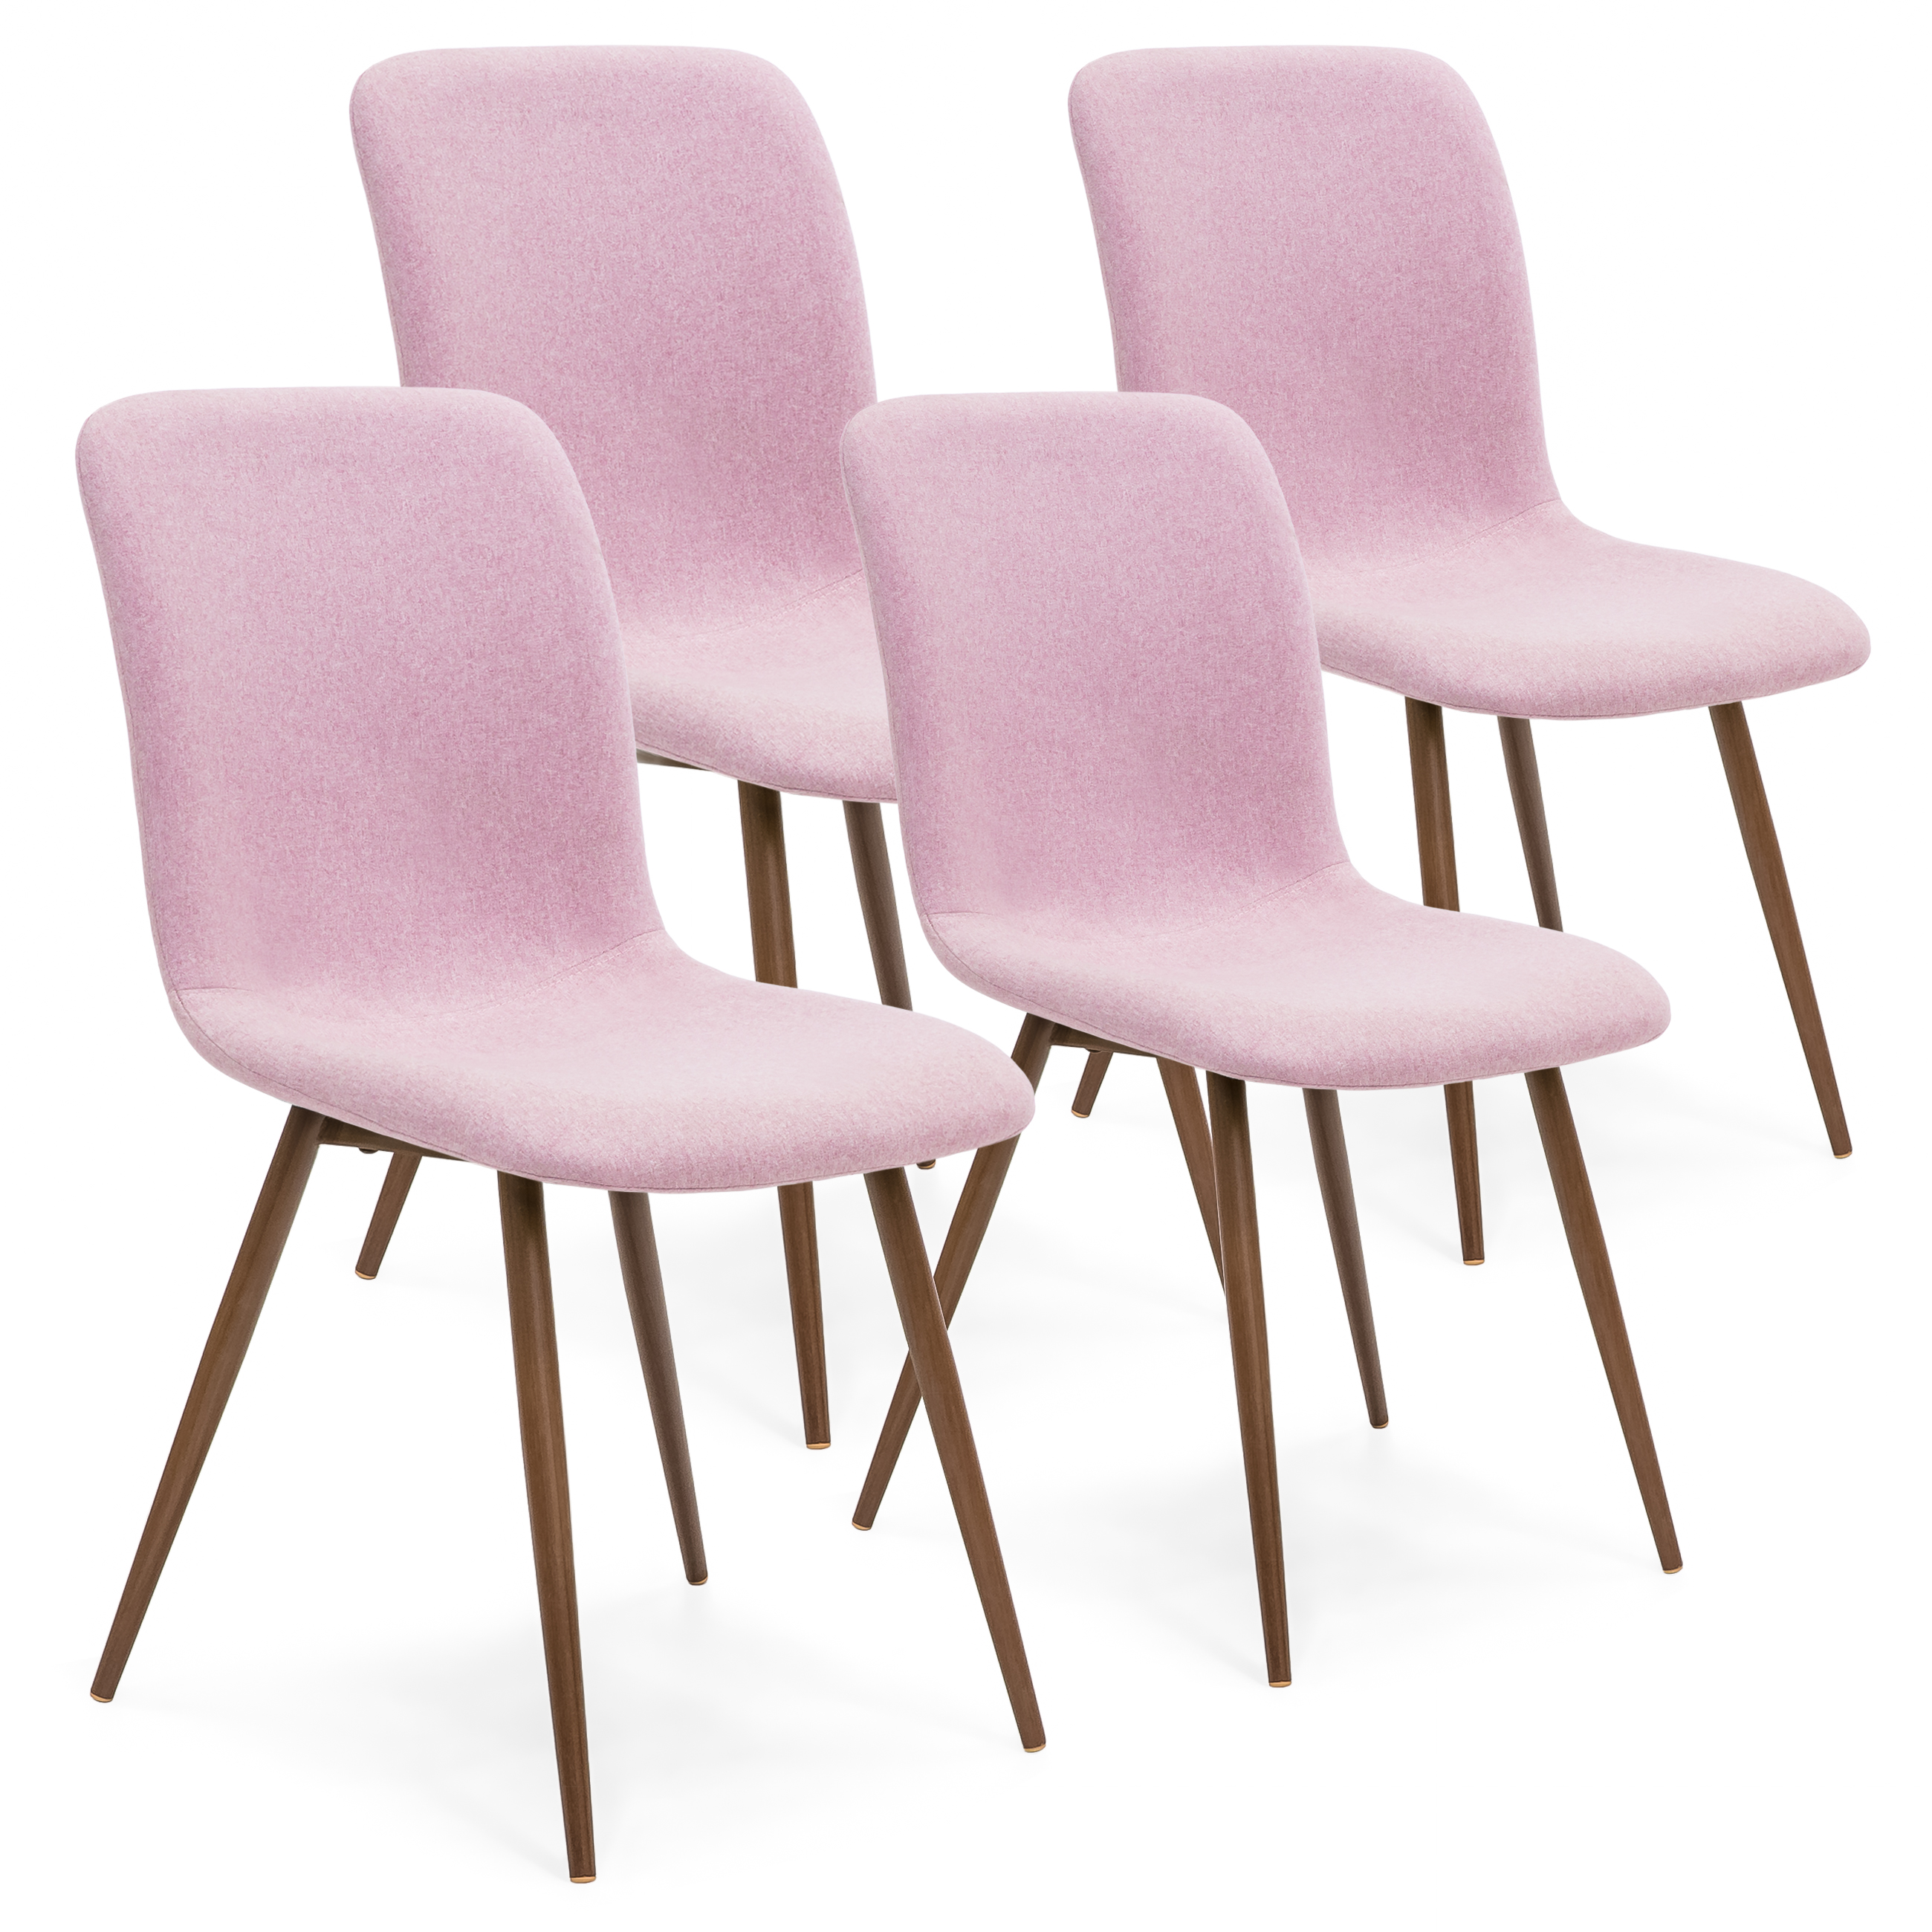 Best Choice Products Set of 4 Mid-Century Modern Dining Room Chairs w/ Fabric Upholstery and Metal Legs - Pink